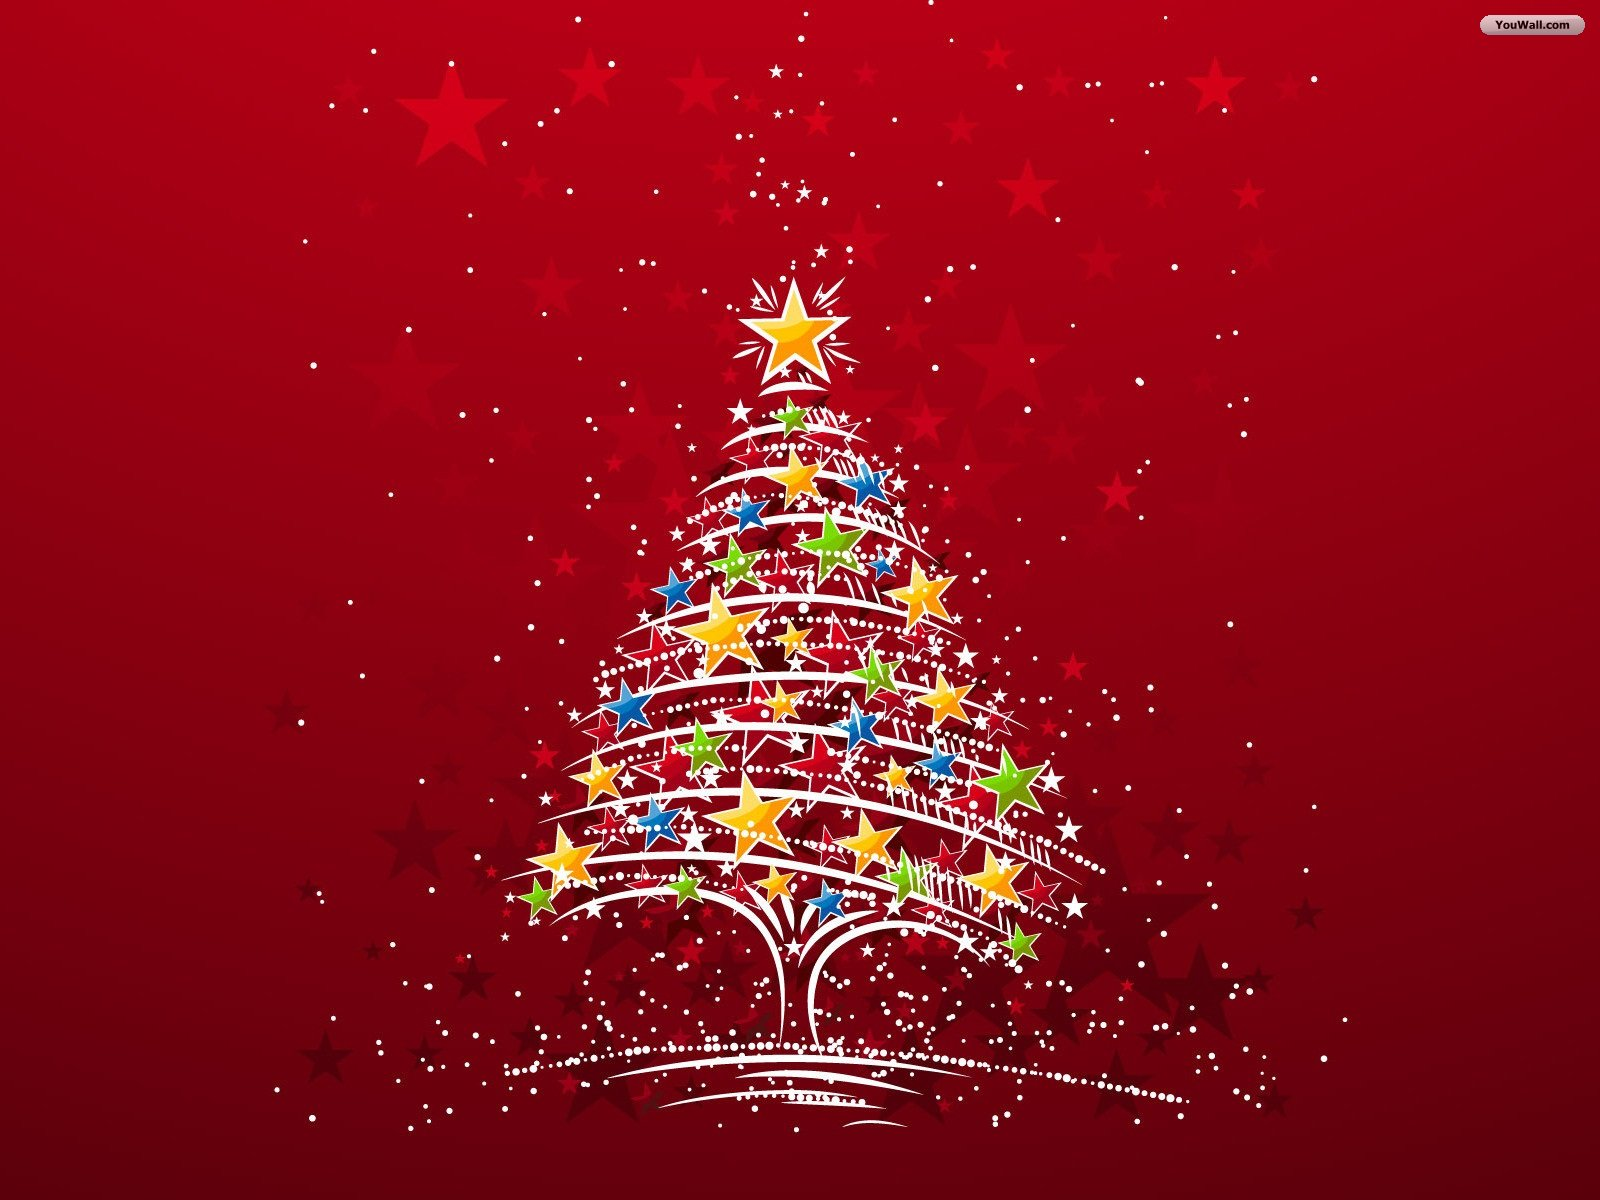 Merry Christmas Wallpaper   wallpaperwallpapersfree wallpaper 1600x1200